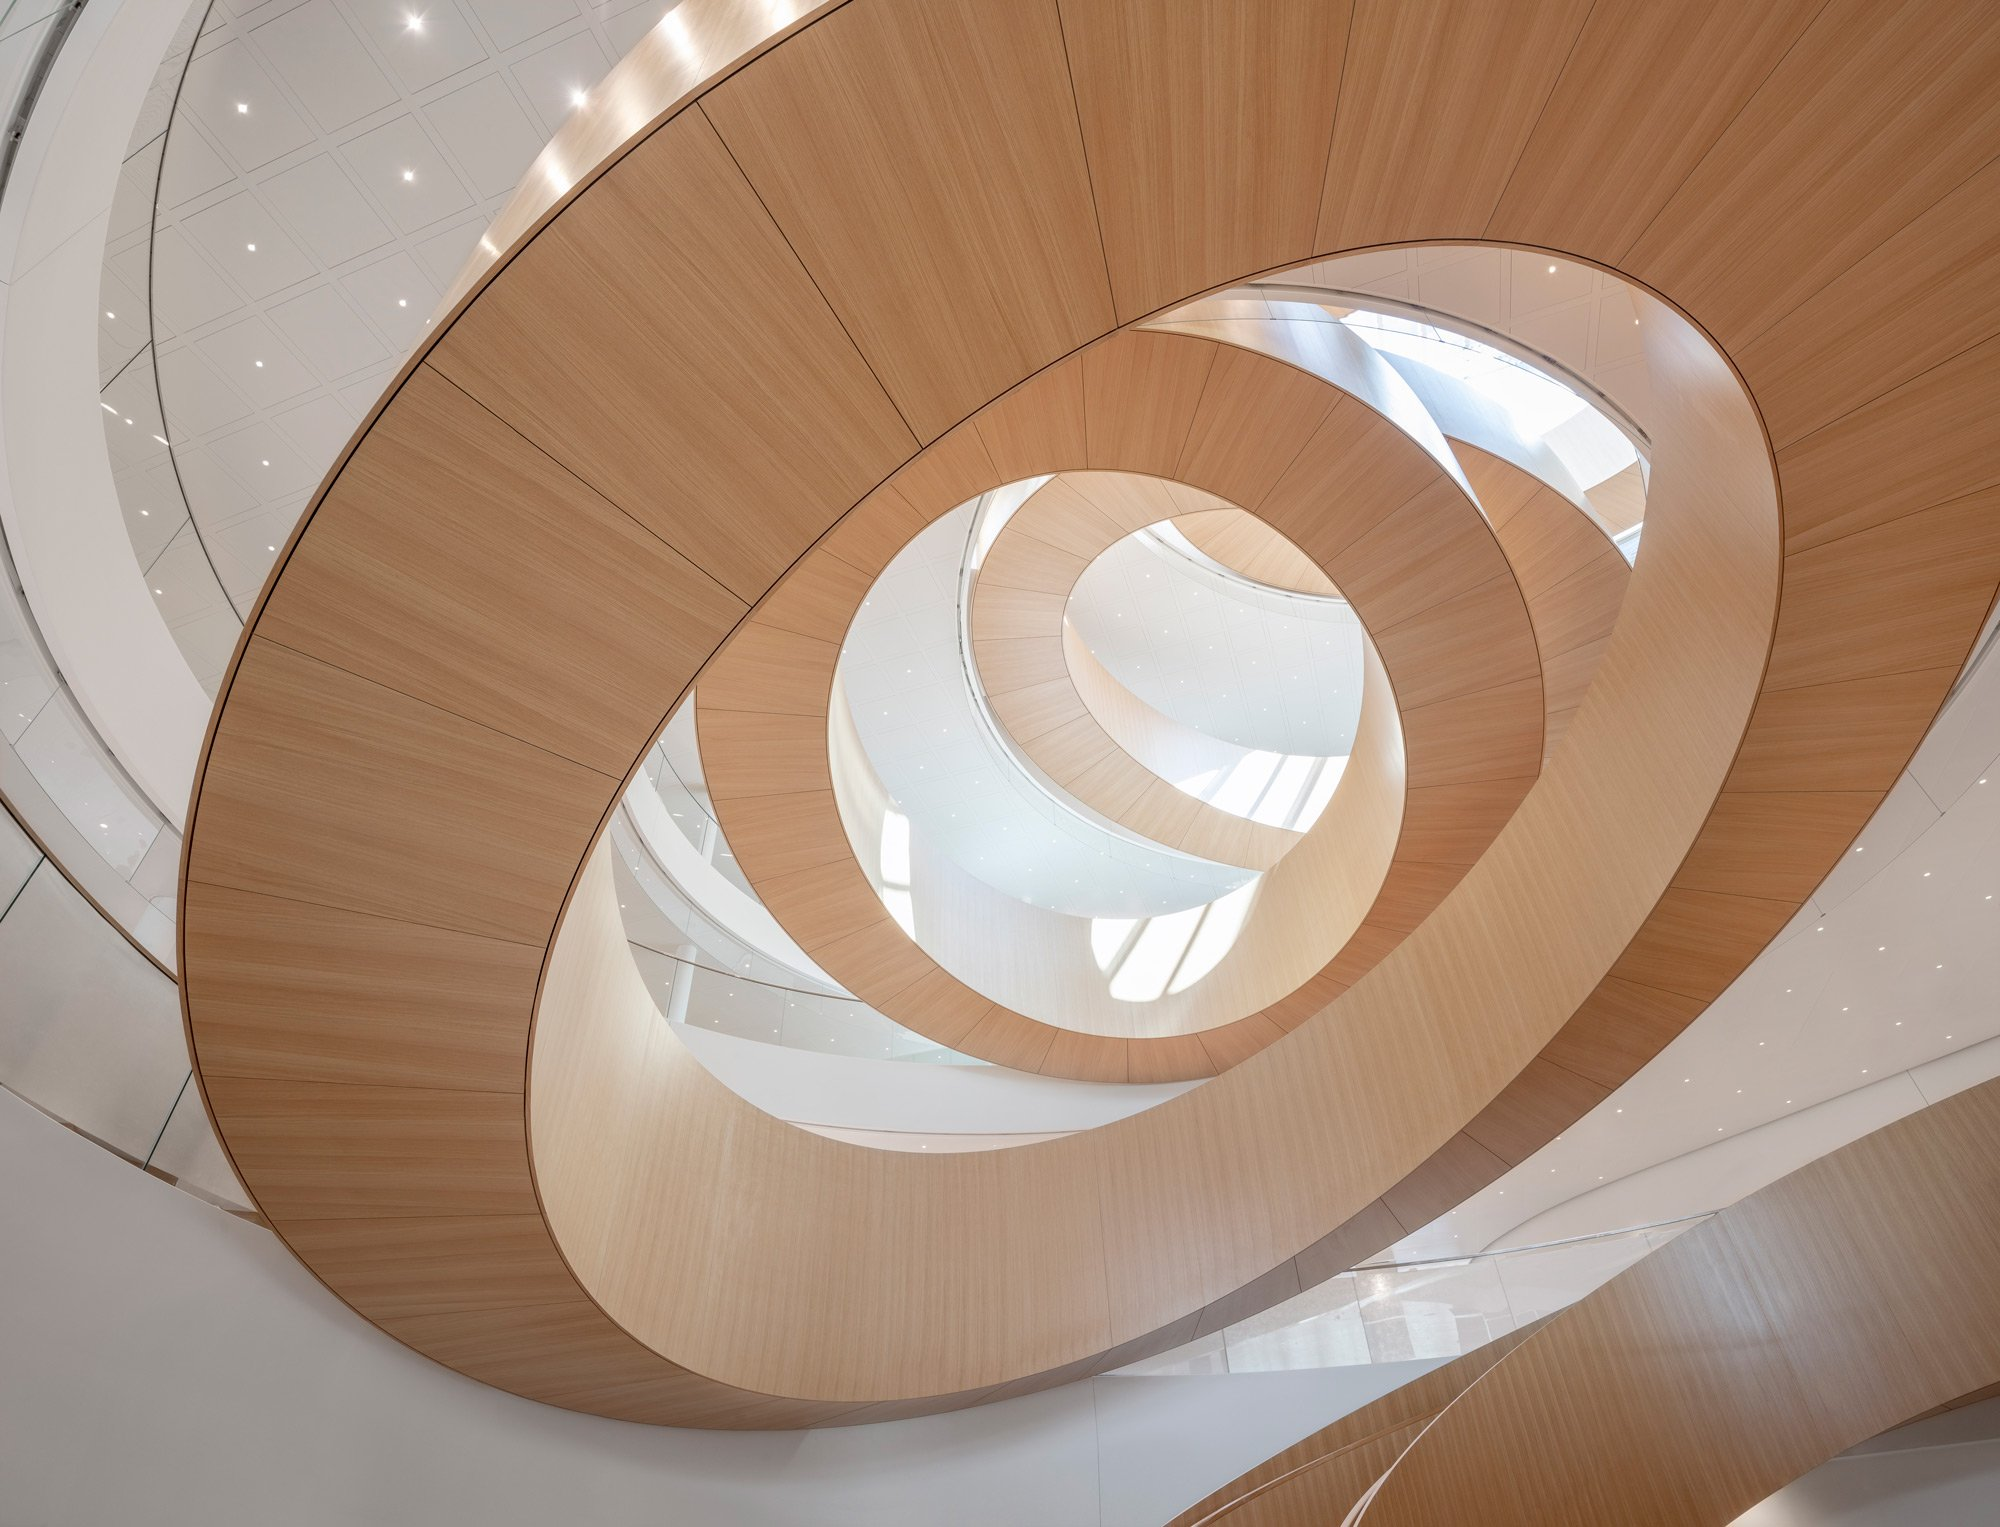 Stair Inspiration: Olympic House - The Unity Staircase